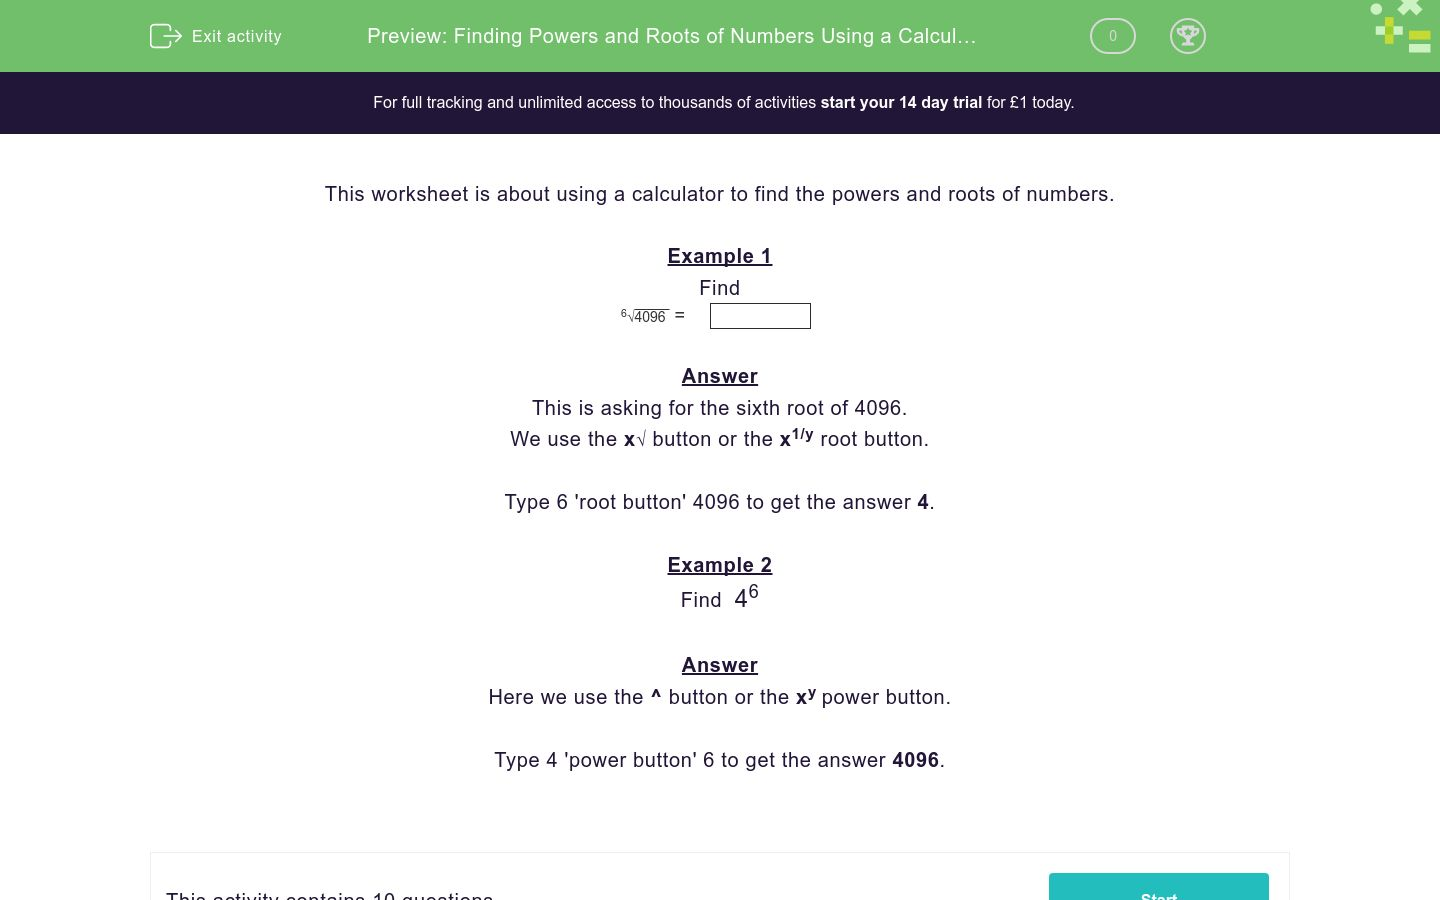 'Finding Powers and Roots of Numbers Using a Calculator' worksheet